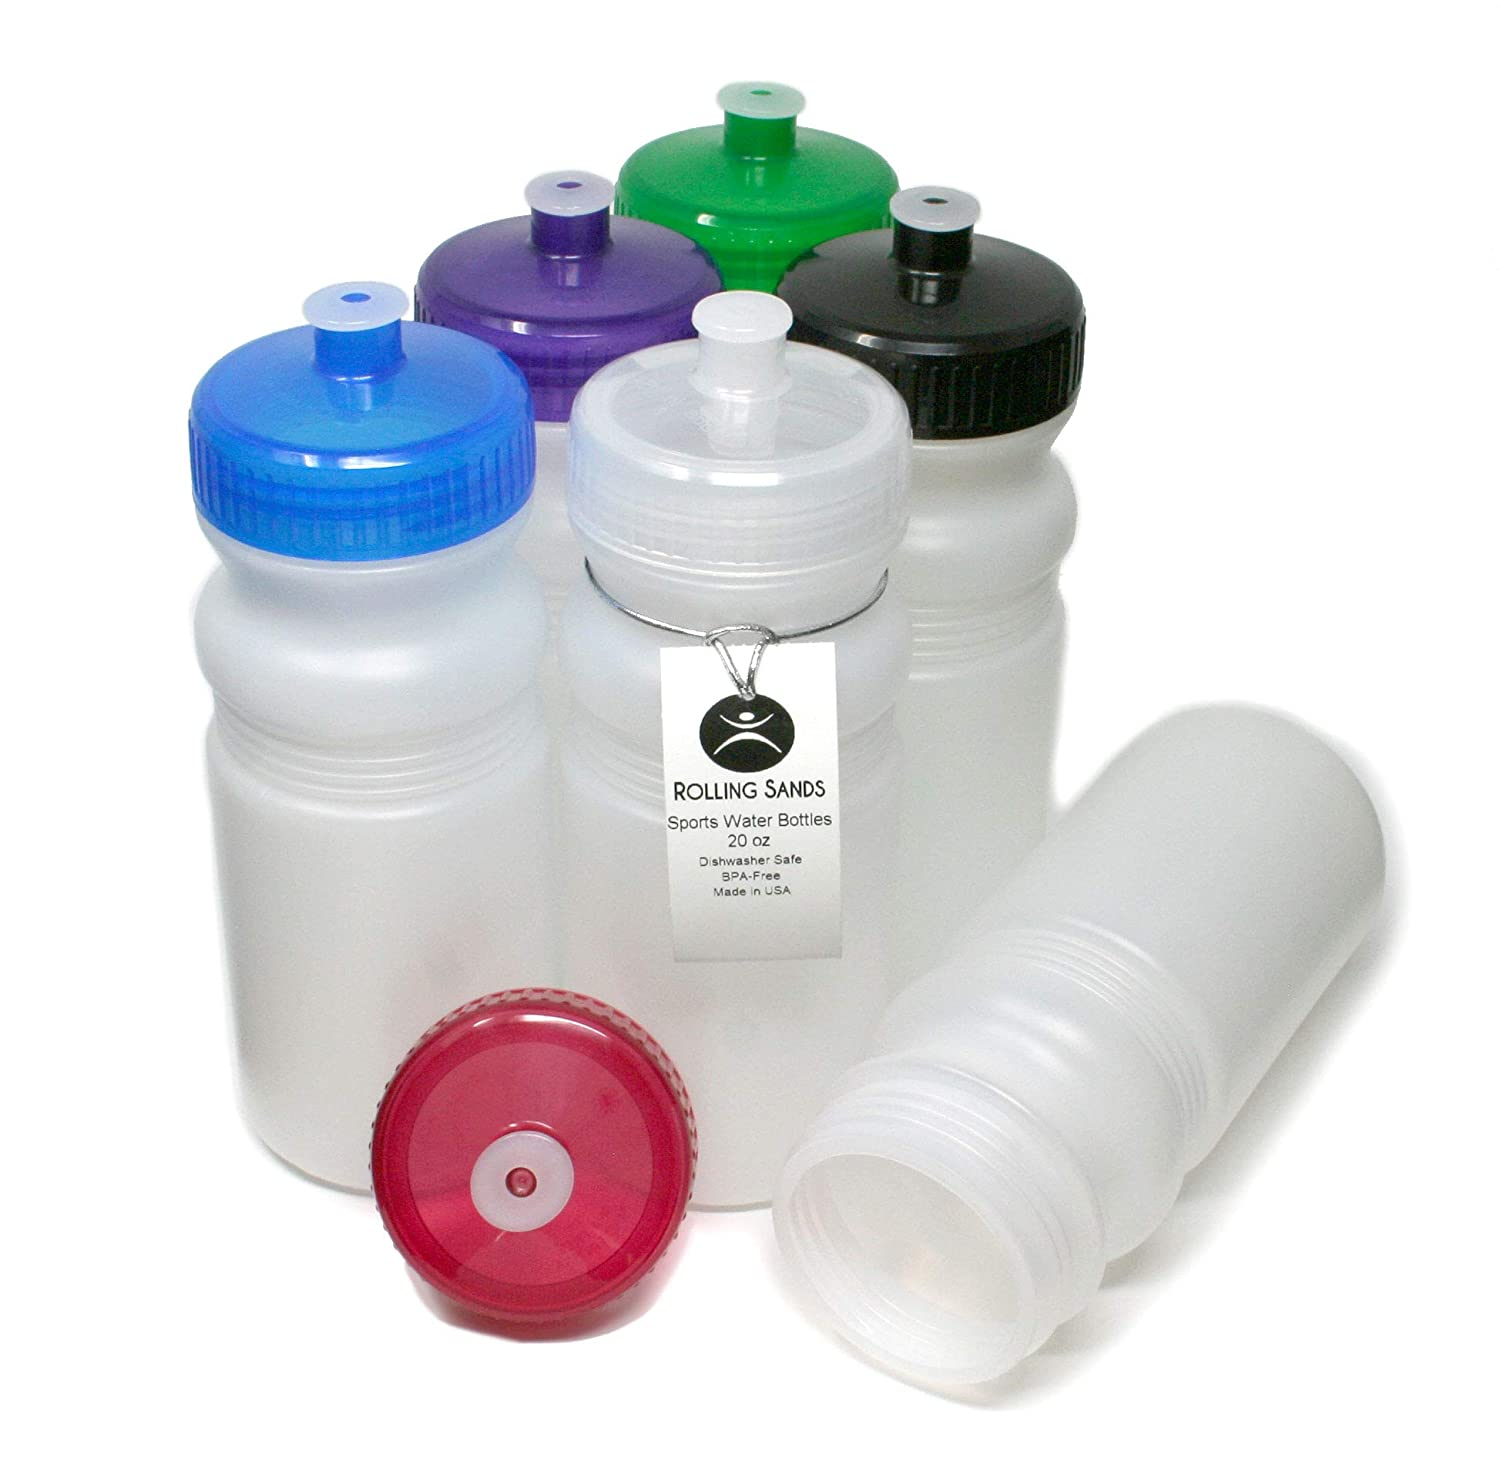 Rolling Sands 20oz Sports Water Bottles 6 Pack (BPA-Free, Made in USA) Dishwasher Safe